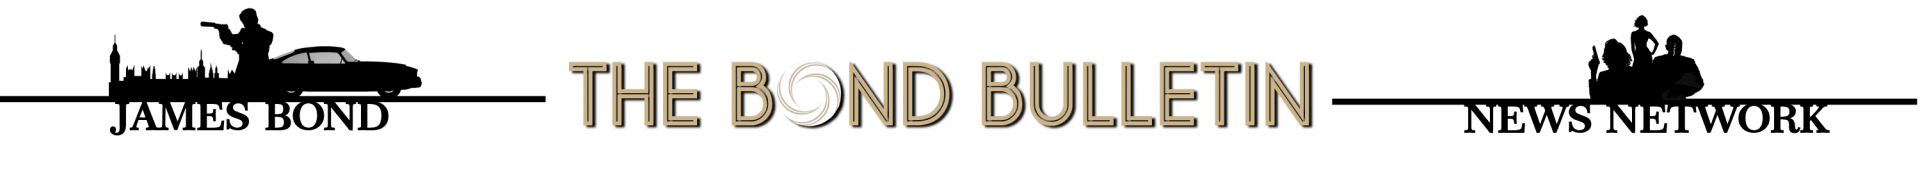 The Bond Bulletin